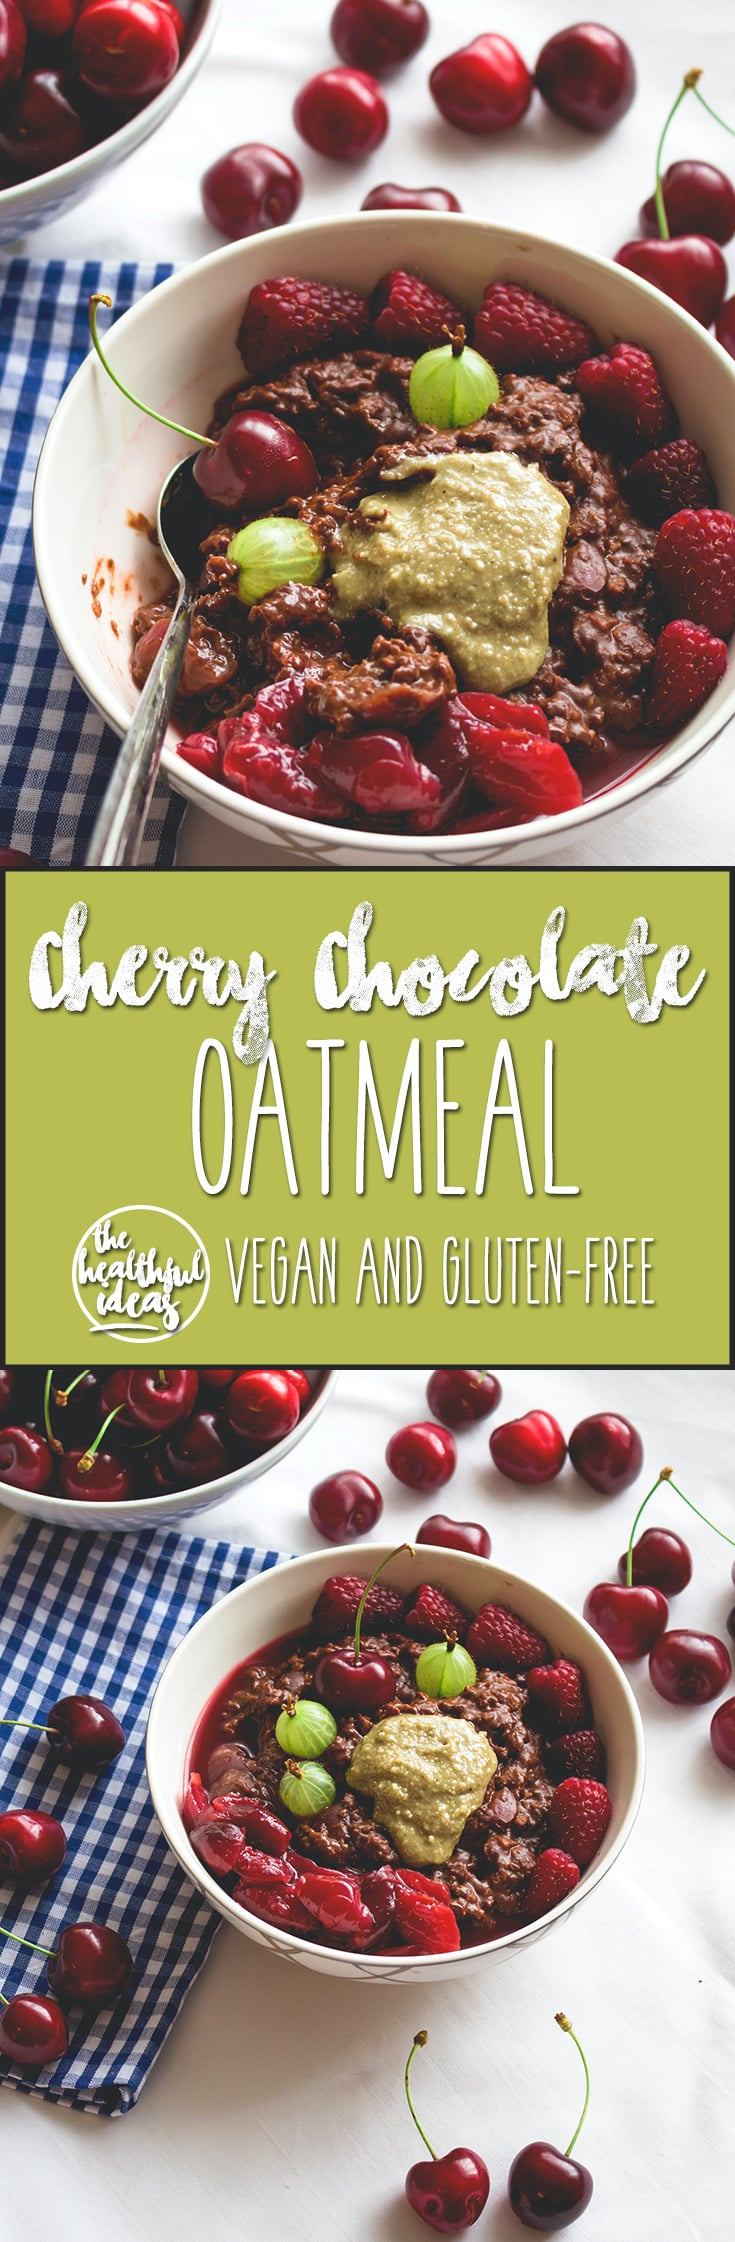 Cherry Chocolate Oatmeal - healthy vegan breakfast recipe. Easy to make and really delicious! I love to make this in the summer! Cherries, cacao, plant milk, oats - that's basically it! | thehealthfulideas.com